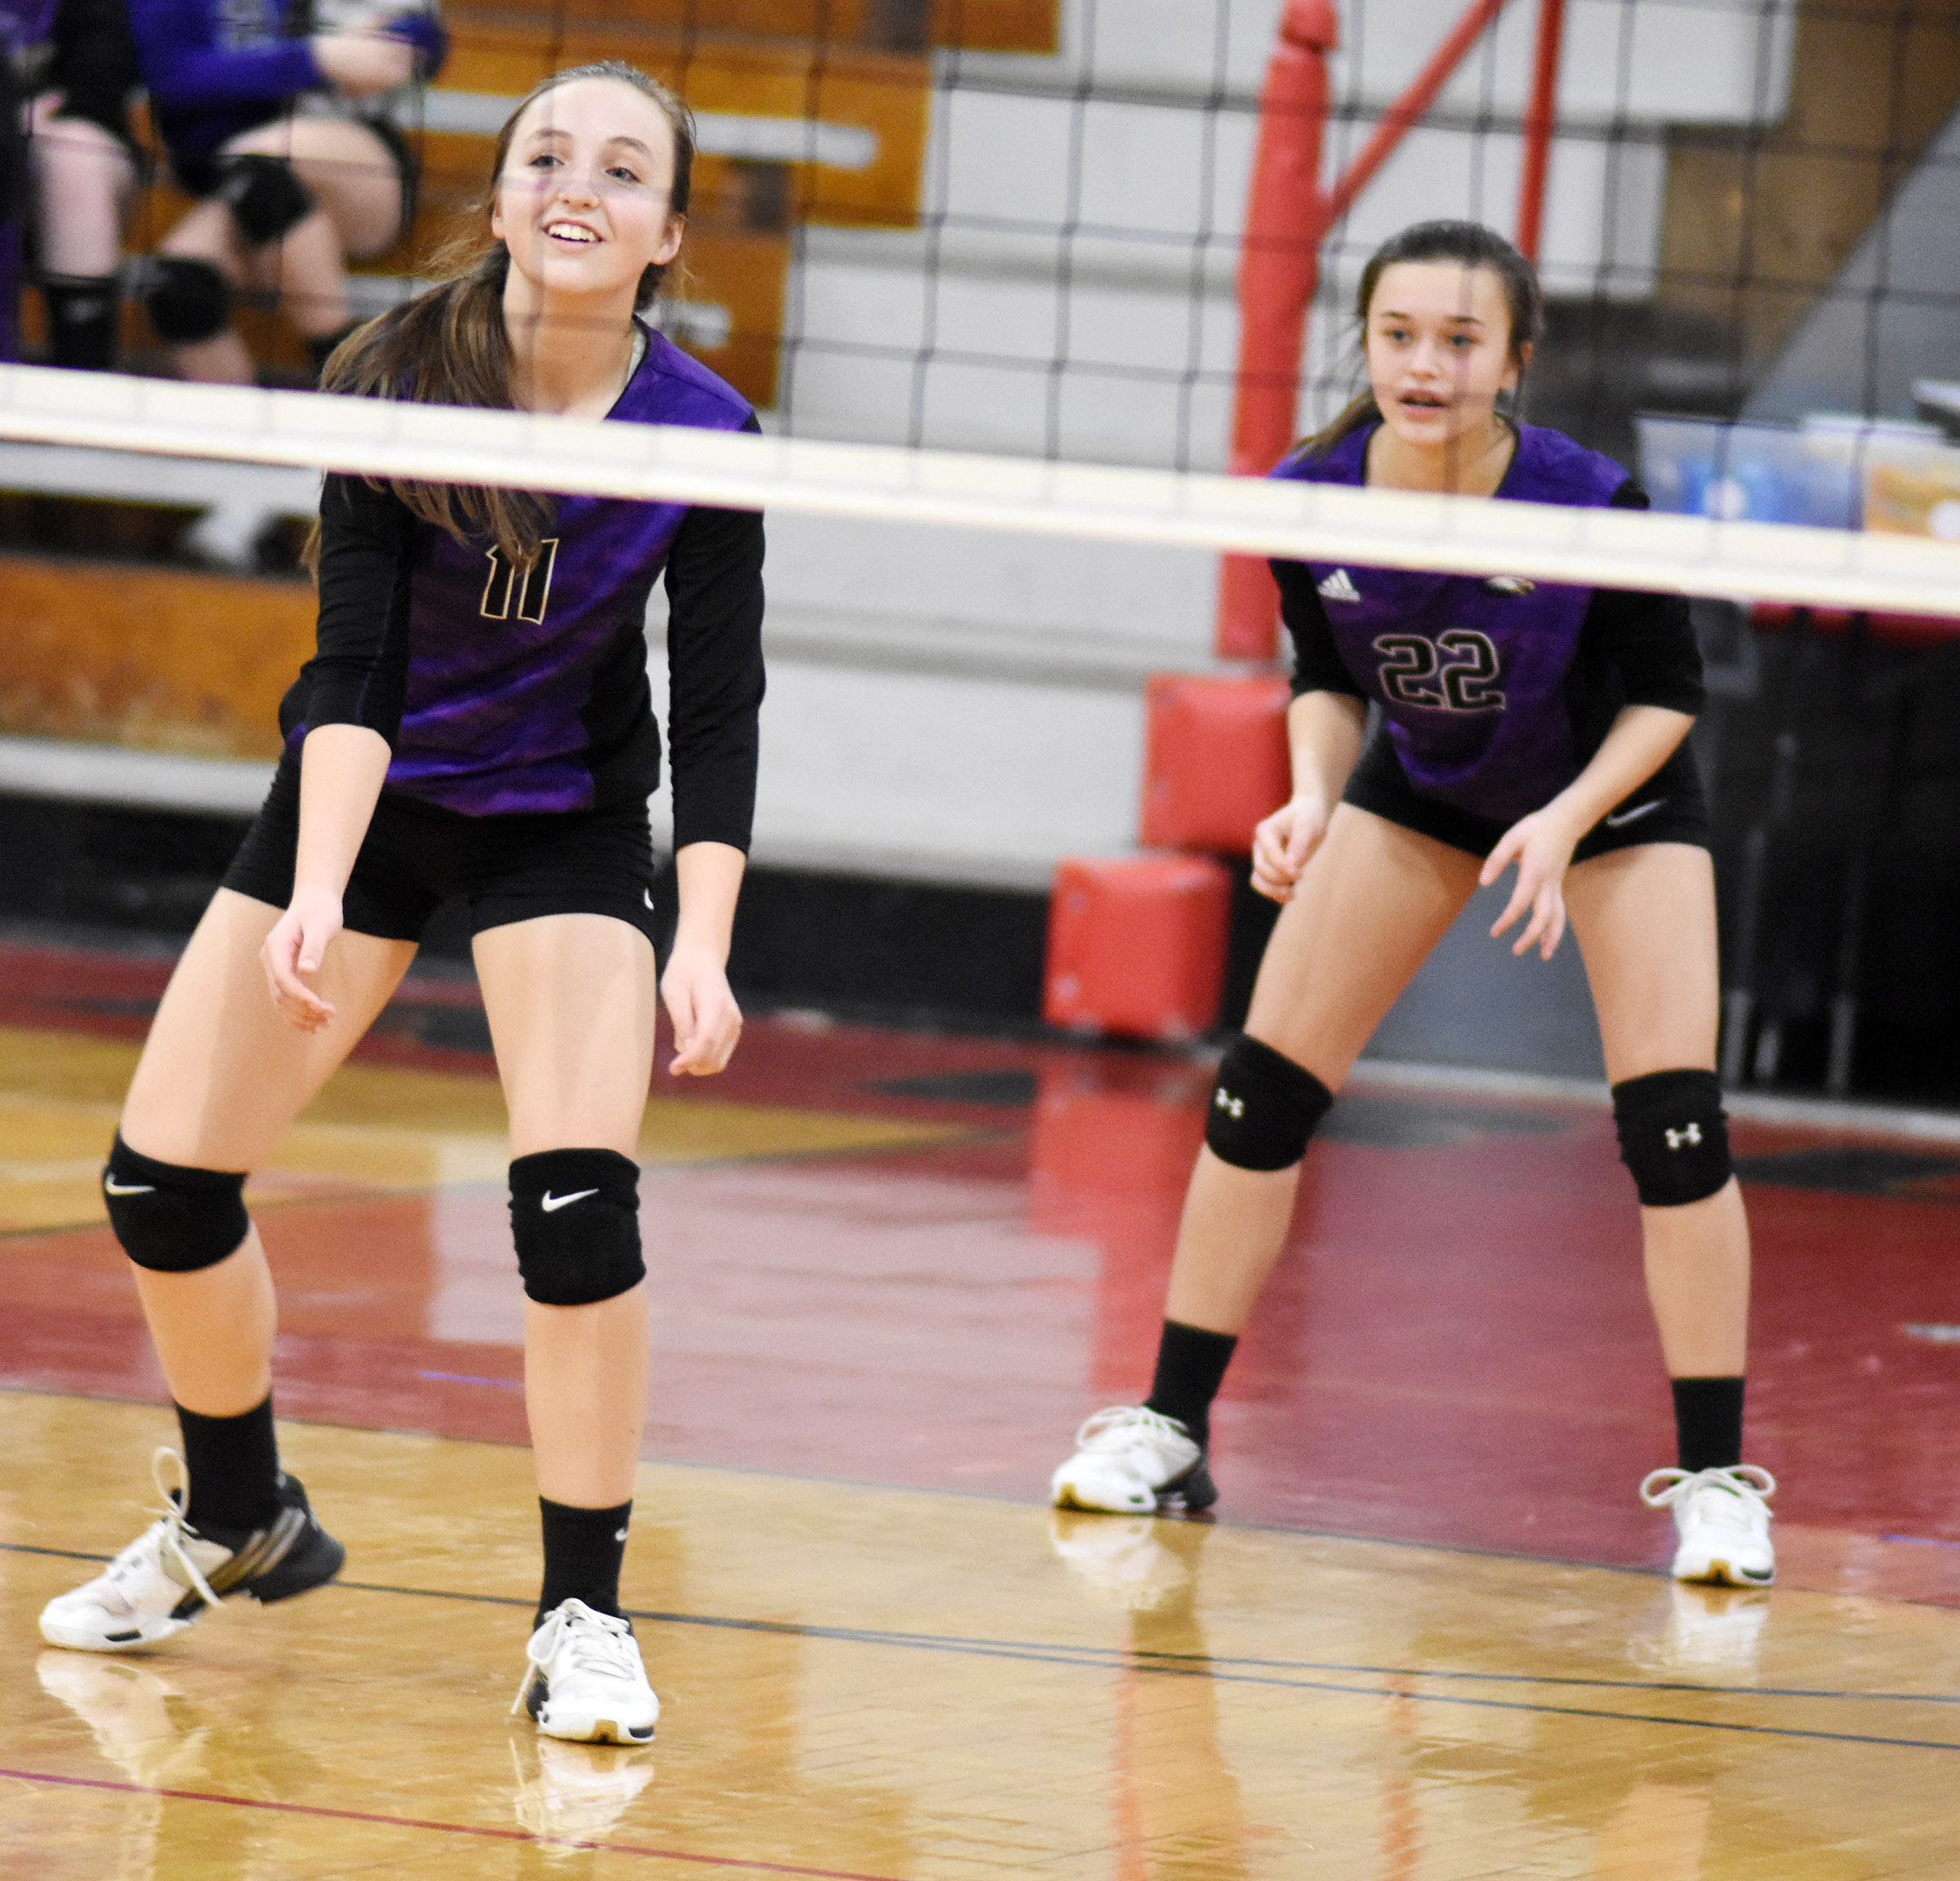 CMS eighth-graders Lainey Watson, at left, and Tayler Thompson watch the ball.